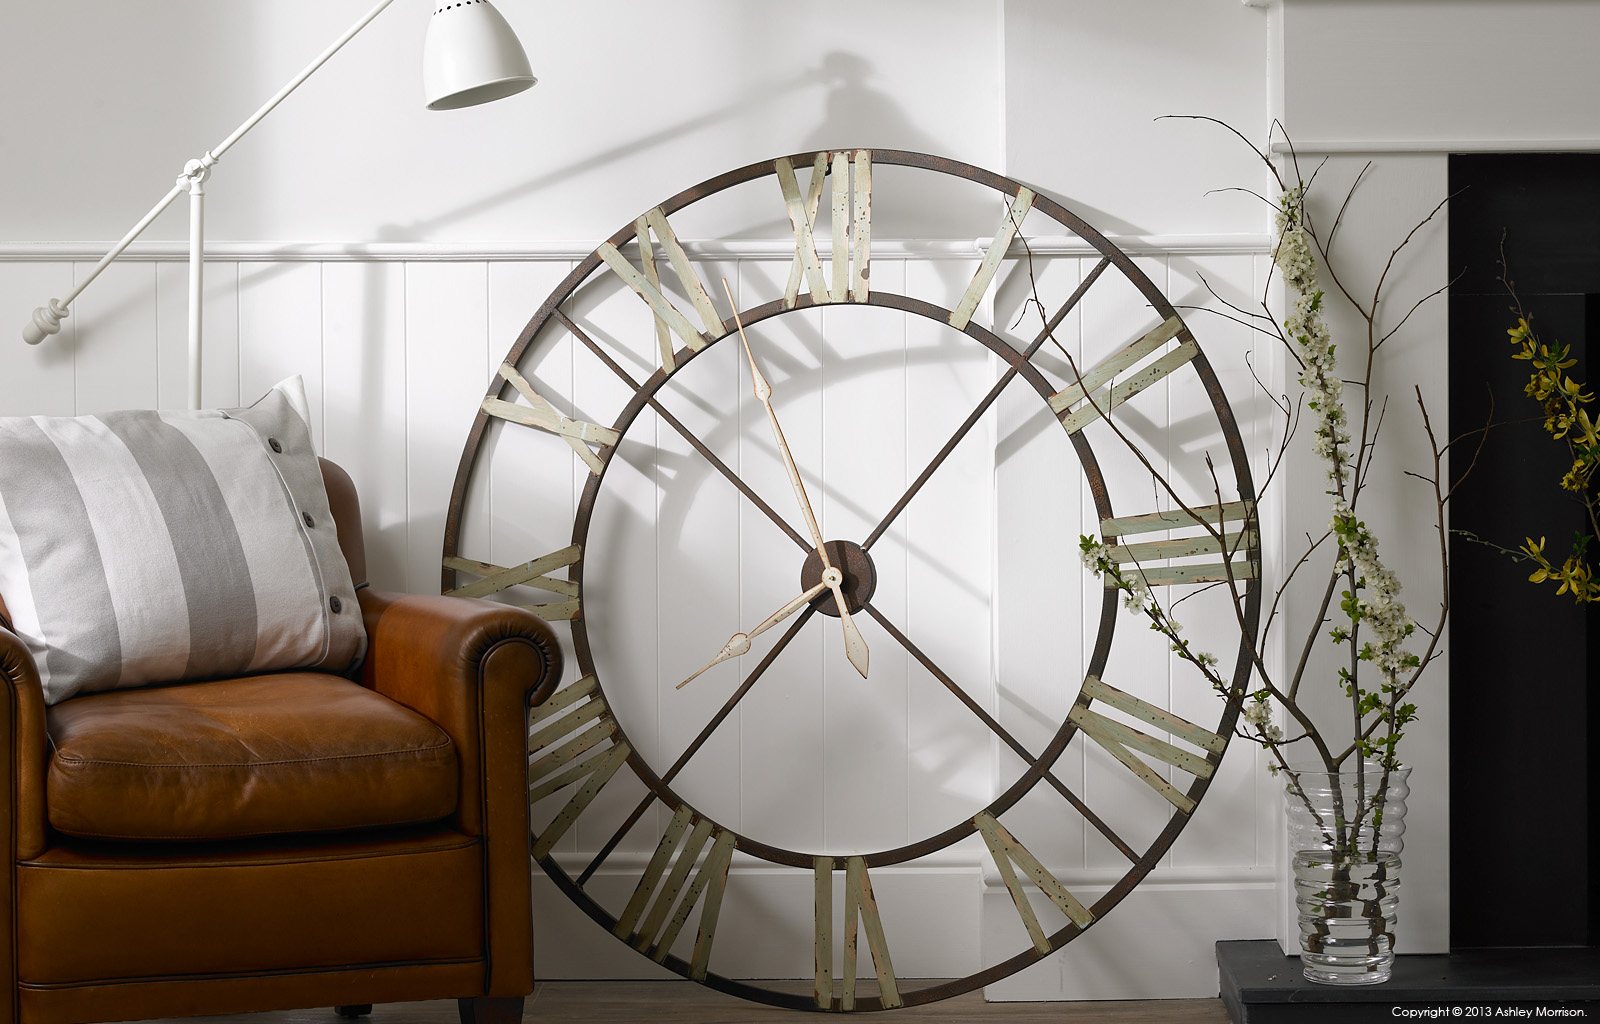 Giant iron wall clock.